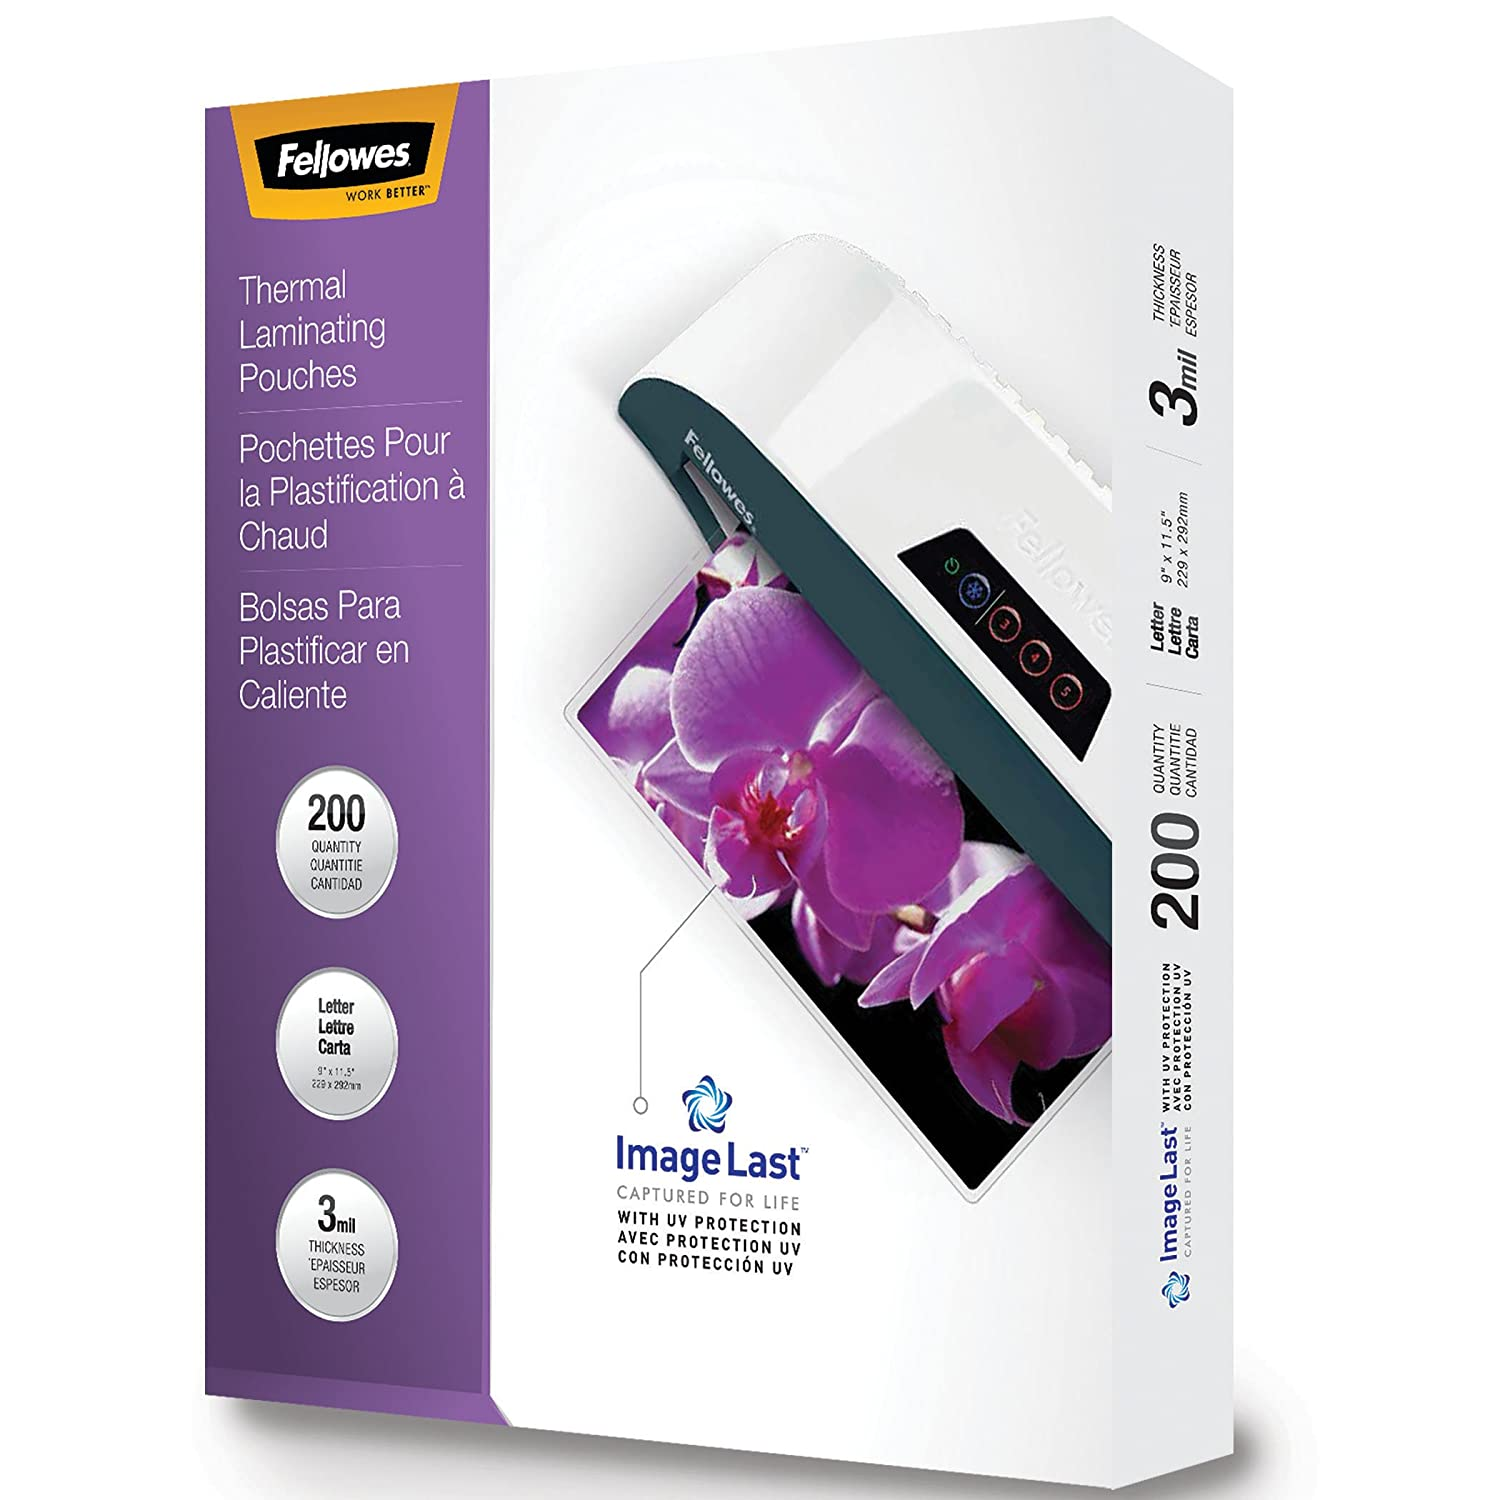 FELLOWES Thermal Laminating Pouches, ImageLast, Jam Free Letter Size, 3 Mil, 200 Pack (5244101)